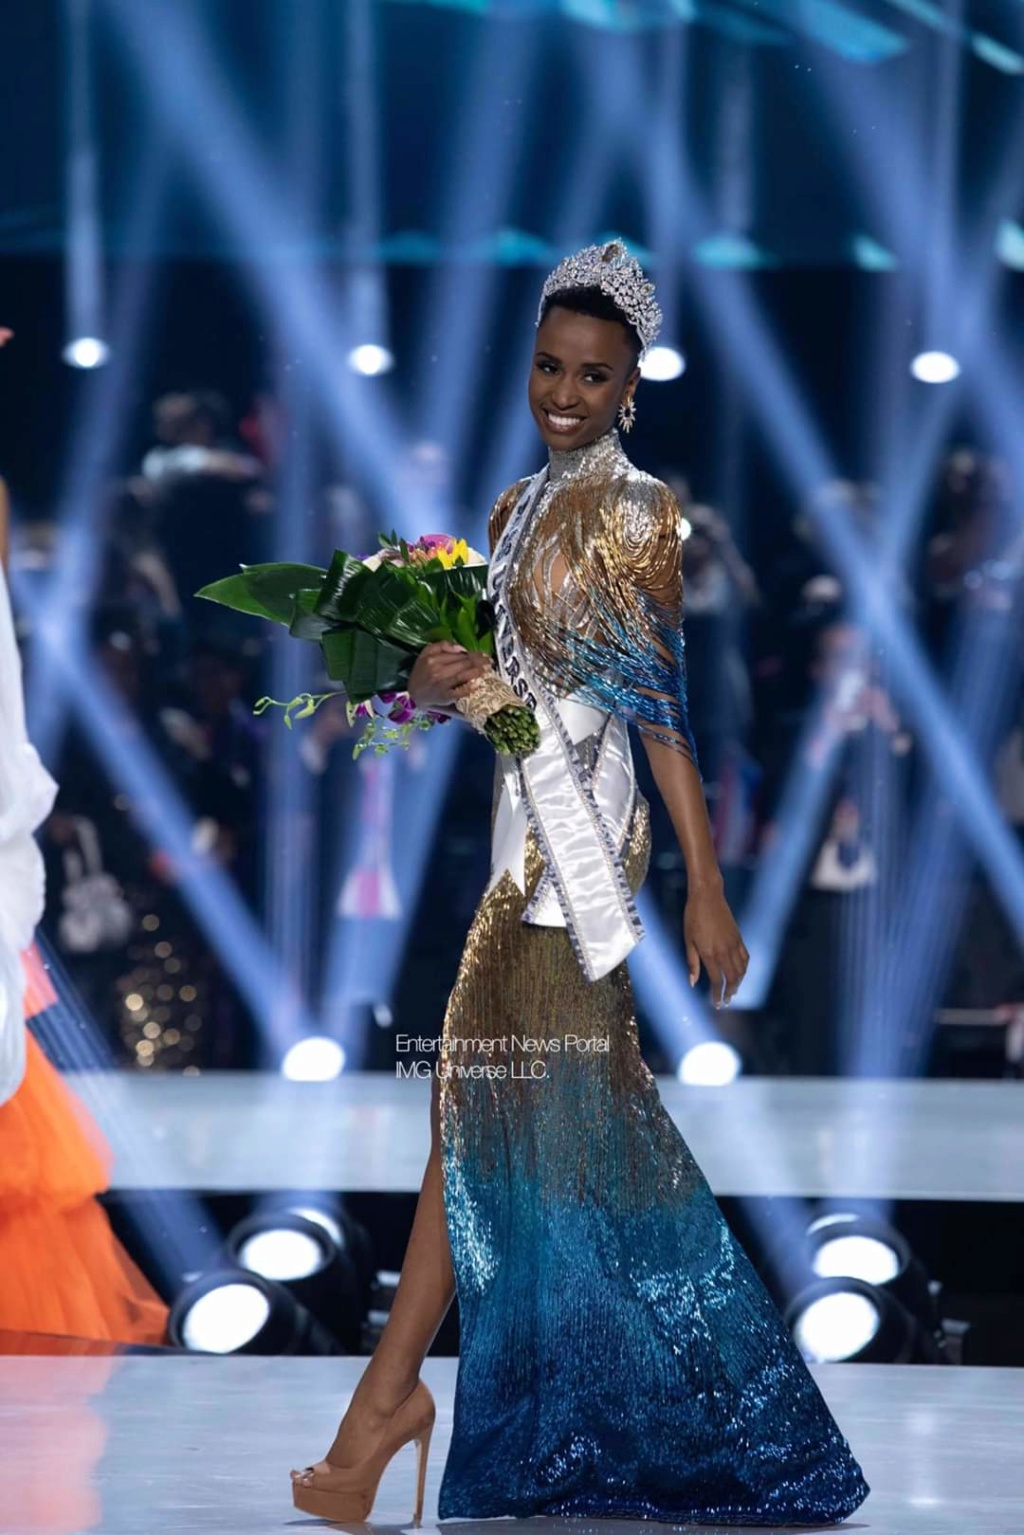 The Official Thread Of Miss Universe 2019 : Zozibini Tunzi of South Africa Fb_14417